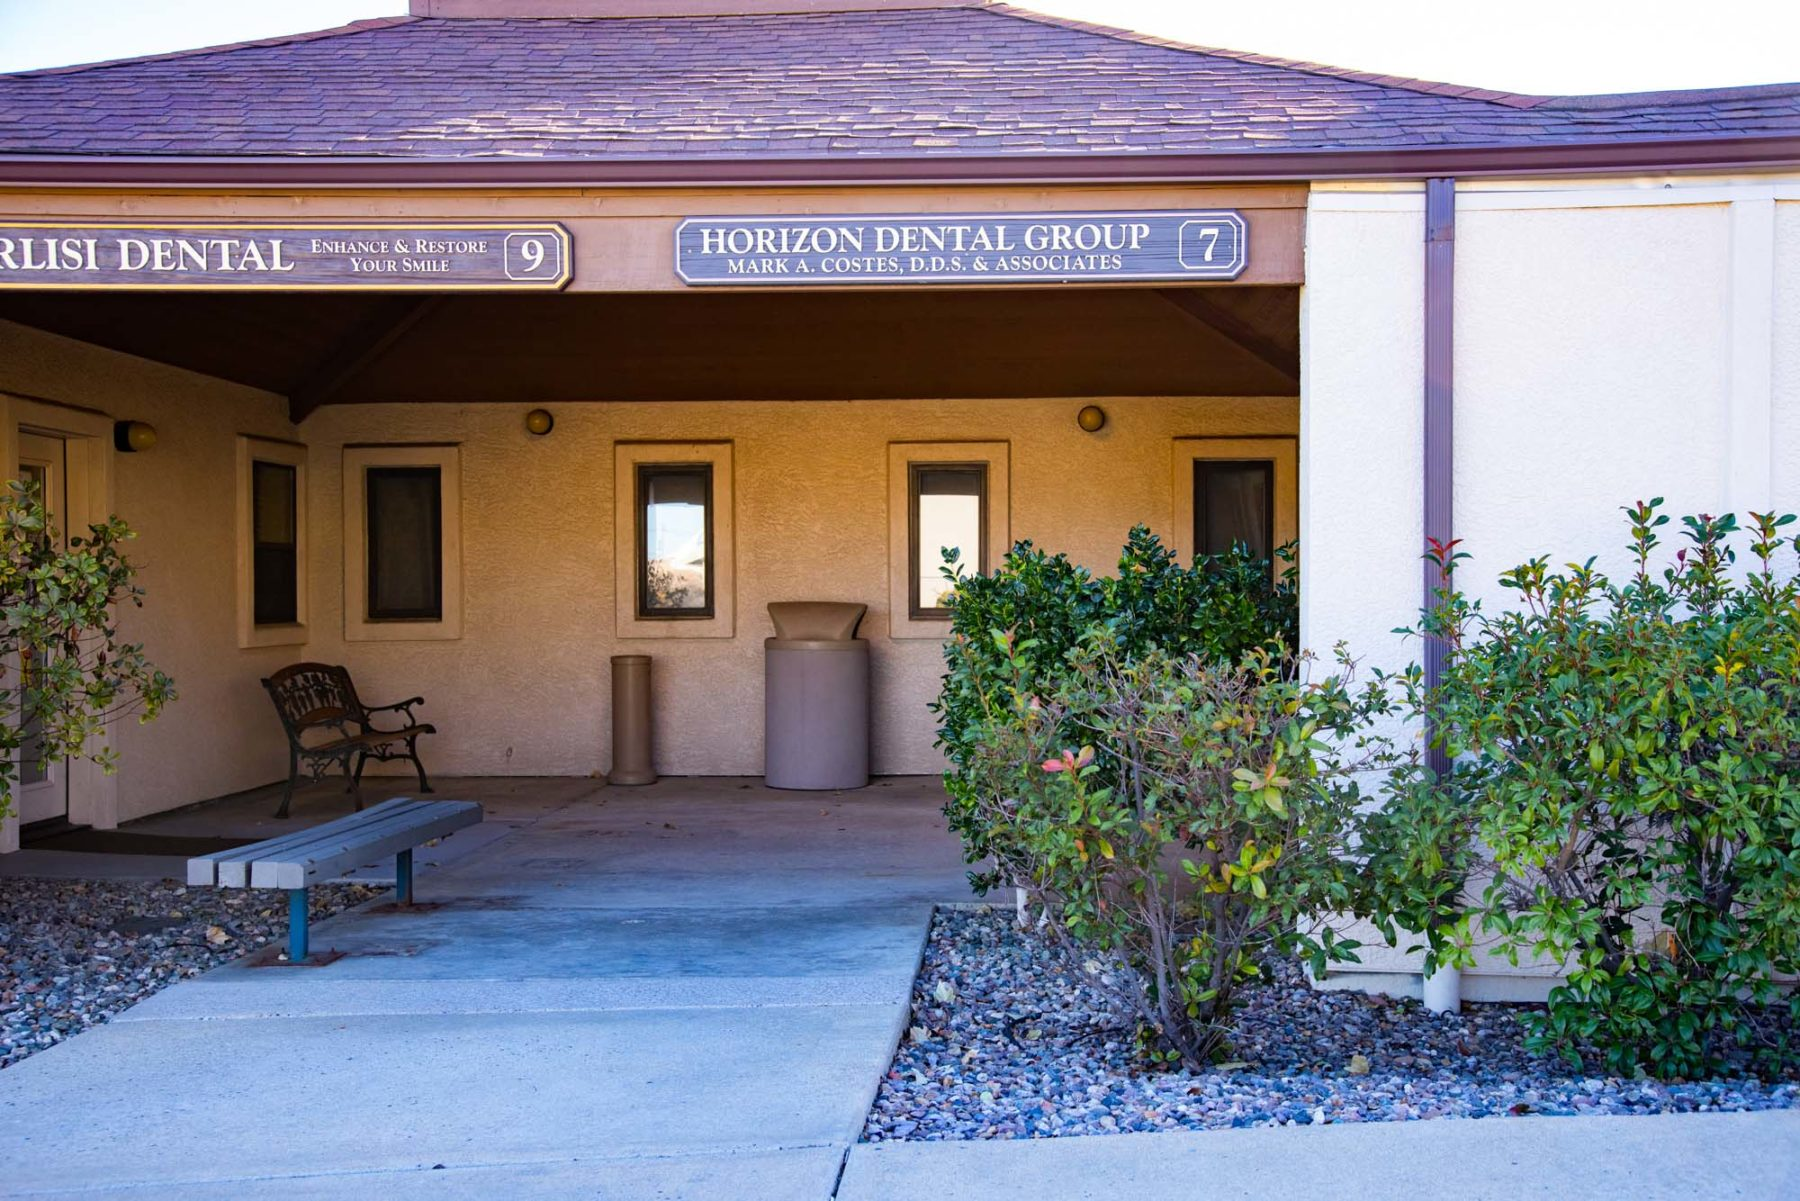 Exterior of the Horizon Dental Group office in Prescott, AZ